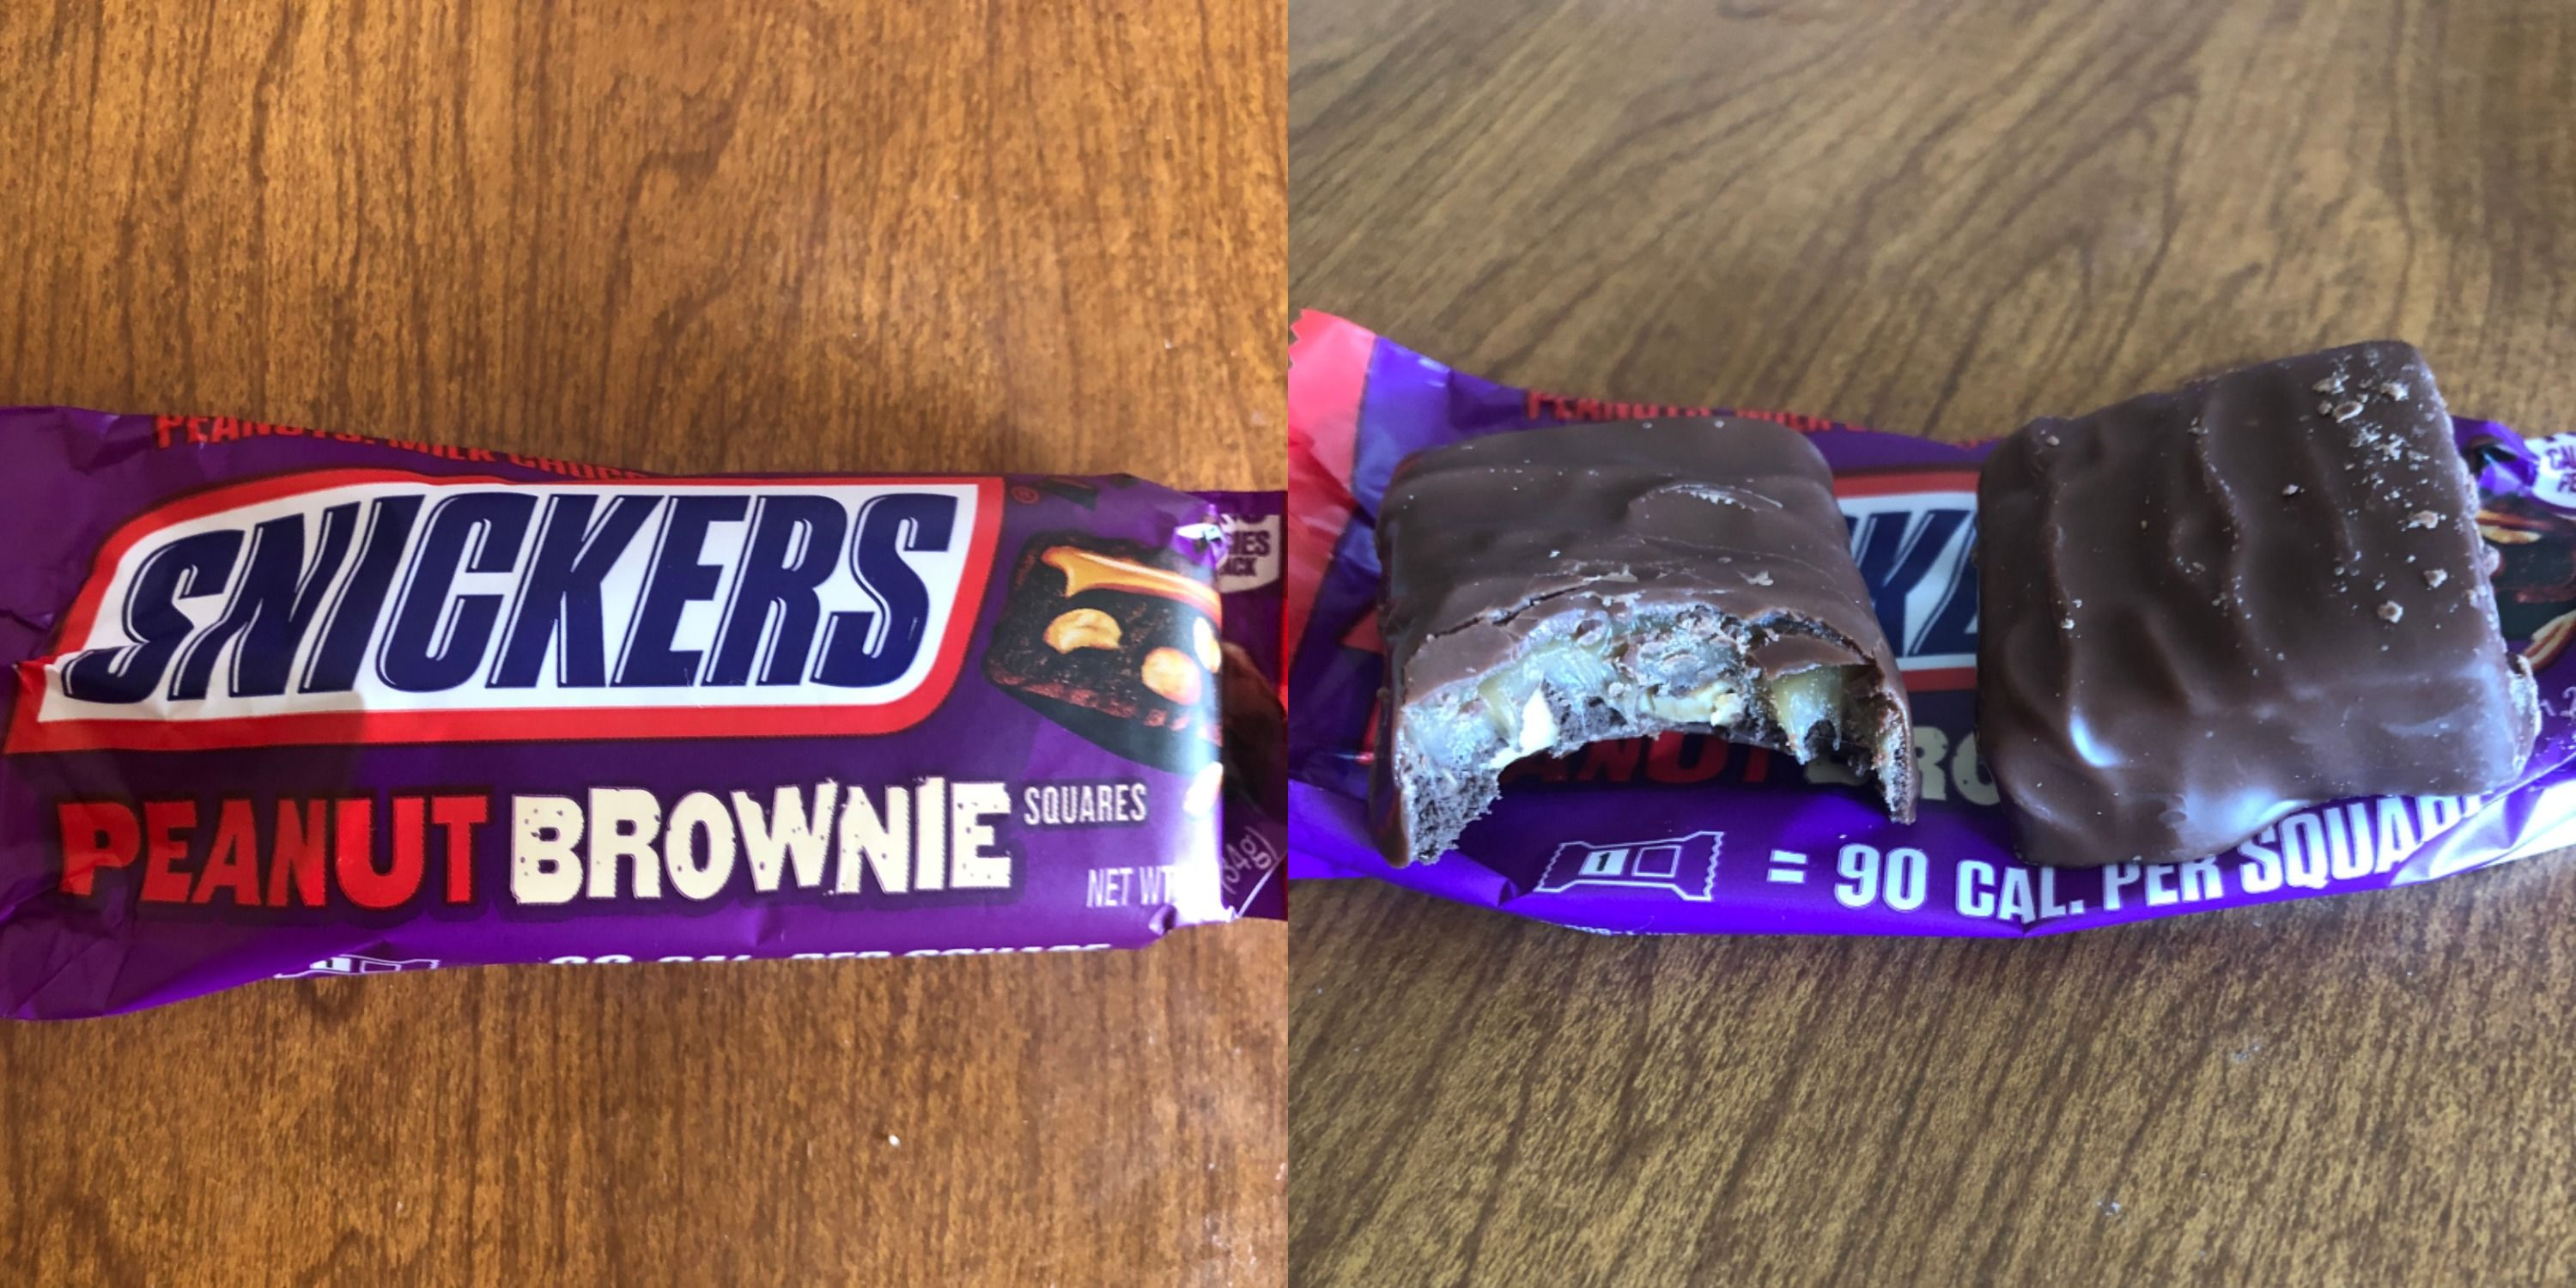 Snickers Is Launching A Peanut Brownie